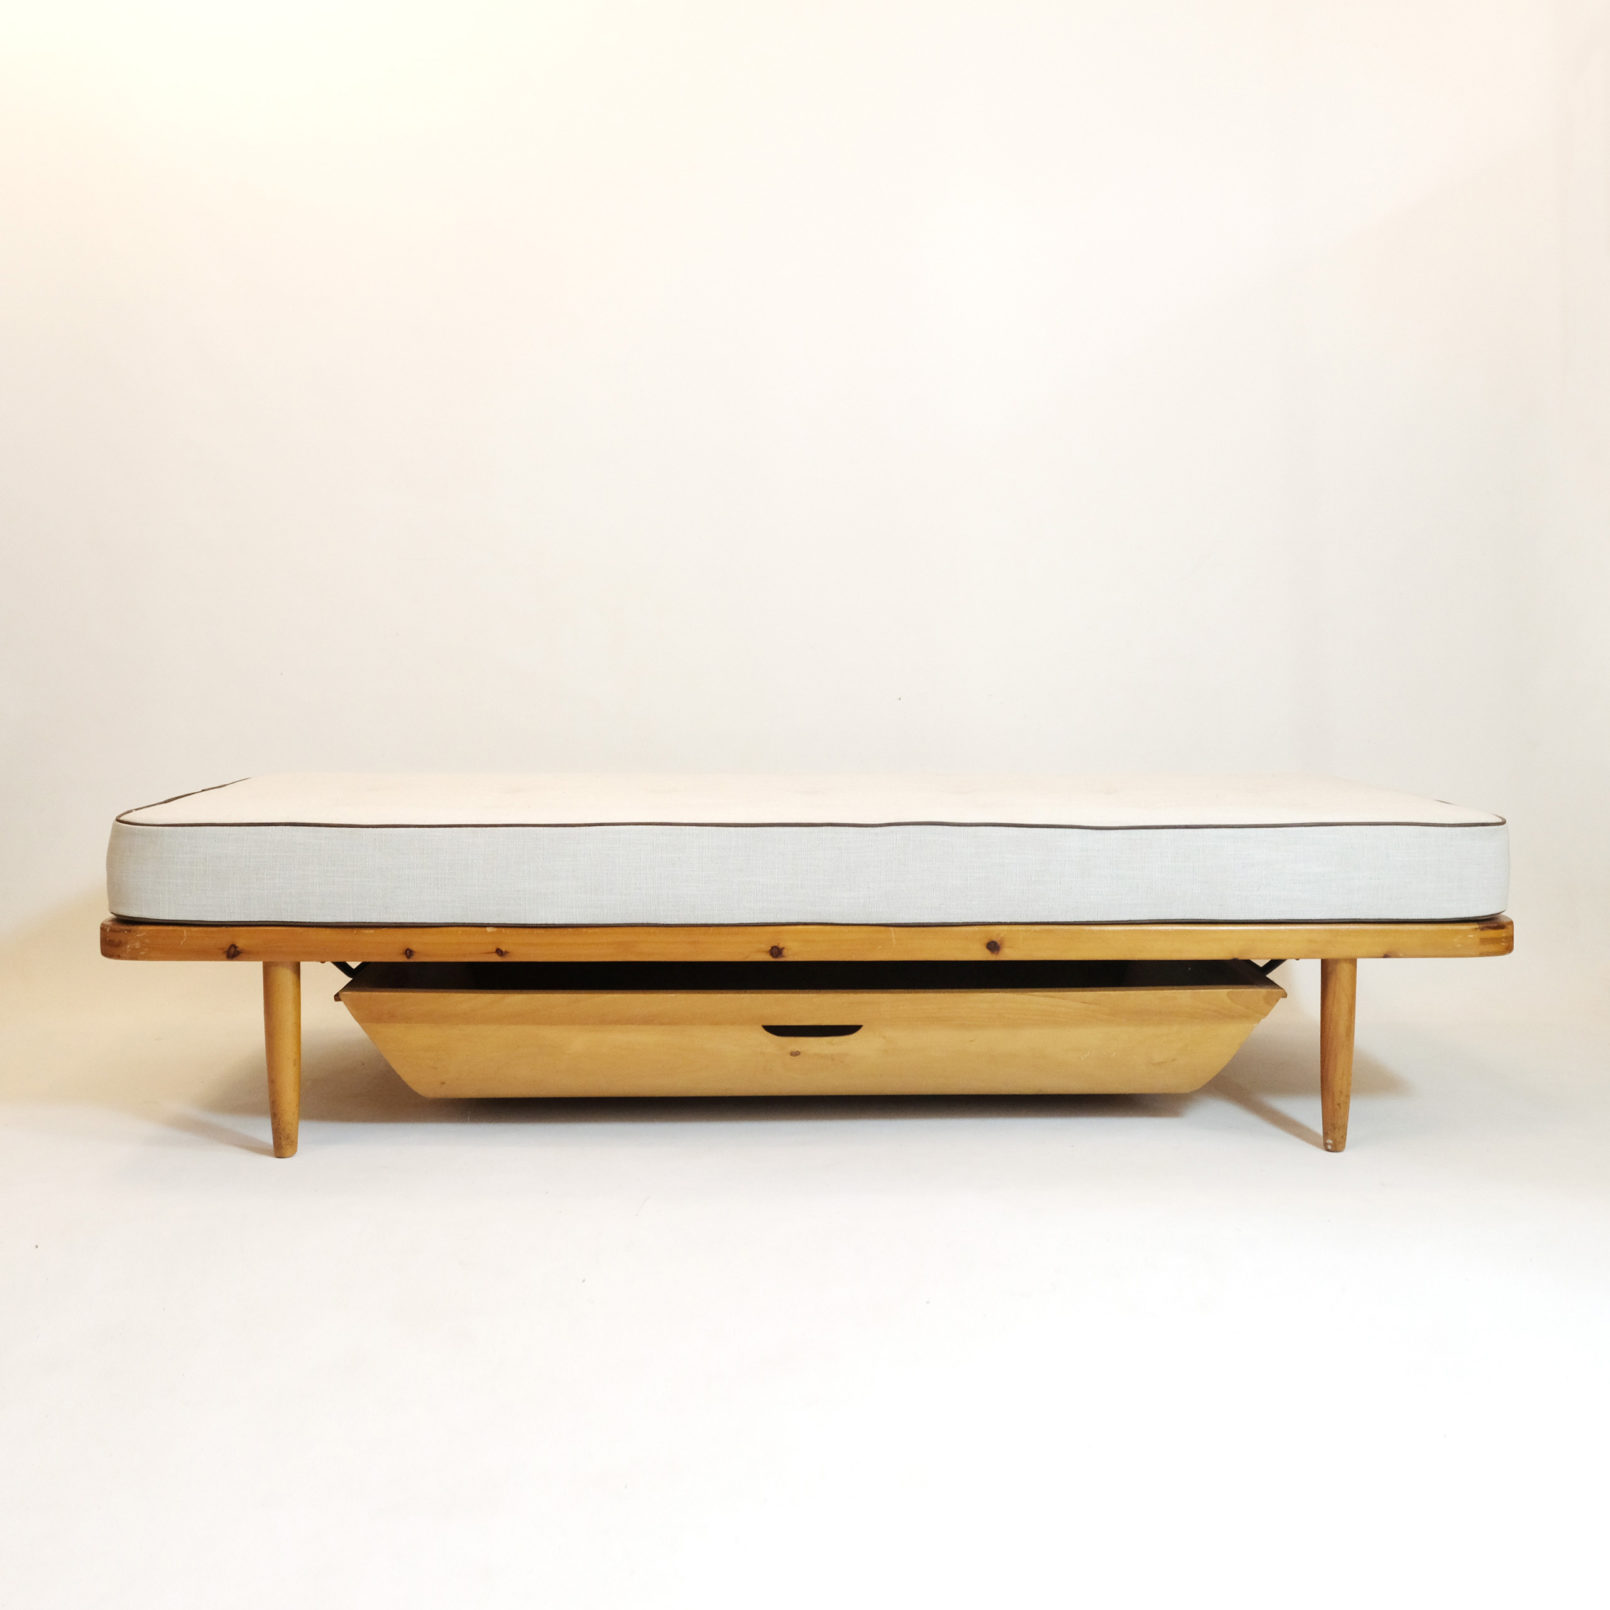 Danish daybed with drawer from the 1950s-1960s.